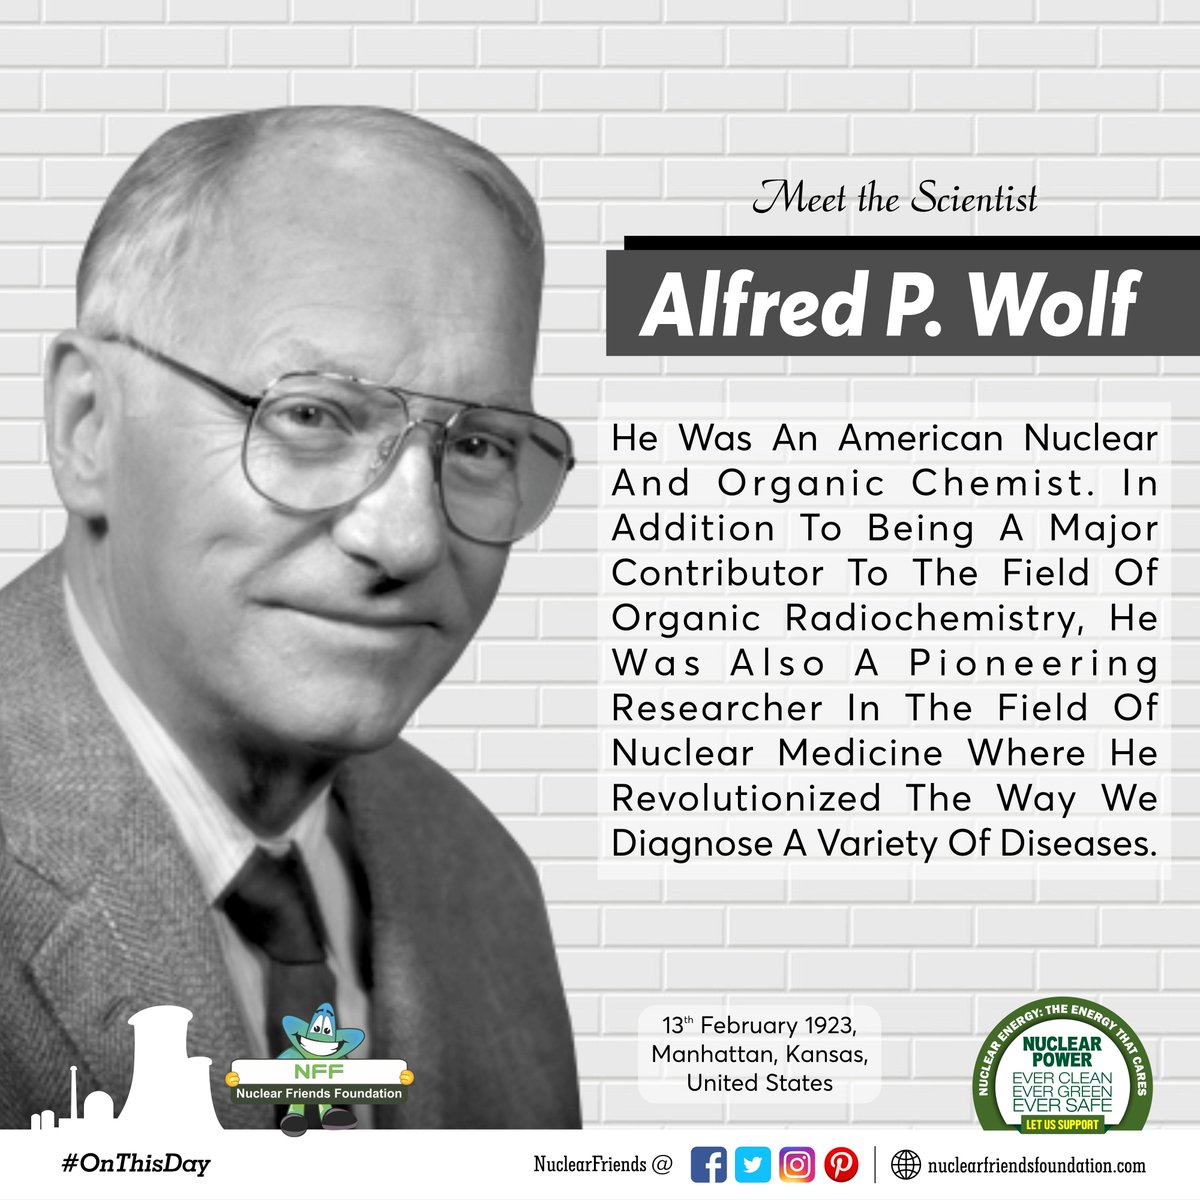 #OnThisDay Meet the scientist Alfred Wolf! He was an American nuclear and organic chemist.   Reach us @ http://nuclearfriendsfoundation.com  #NuclearPower #NuclearEnergy #Evergreen  #NuclearFacts  #ThursdayThoughts @iaeaorg @WorldNuclear @WorldNuclearUni @W_Nuclear_News